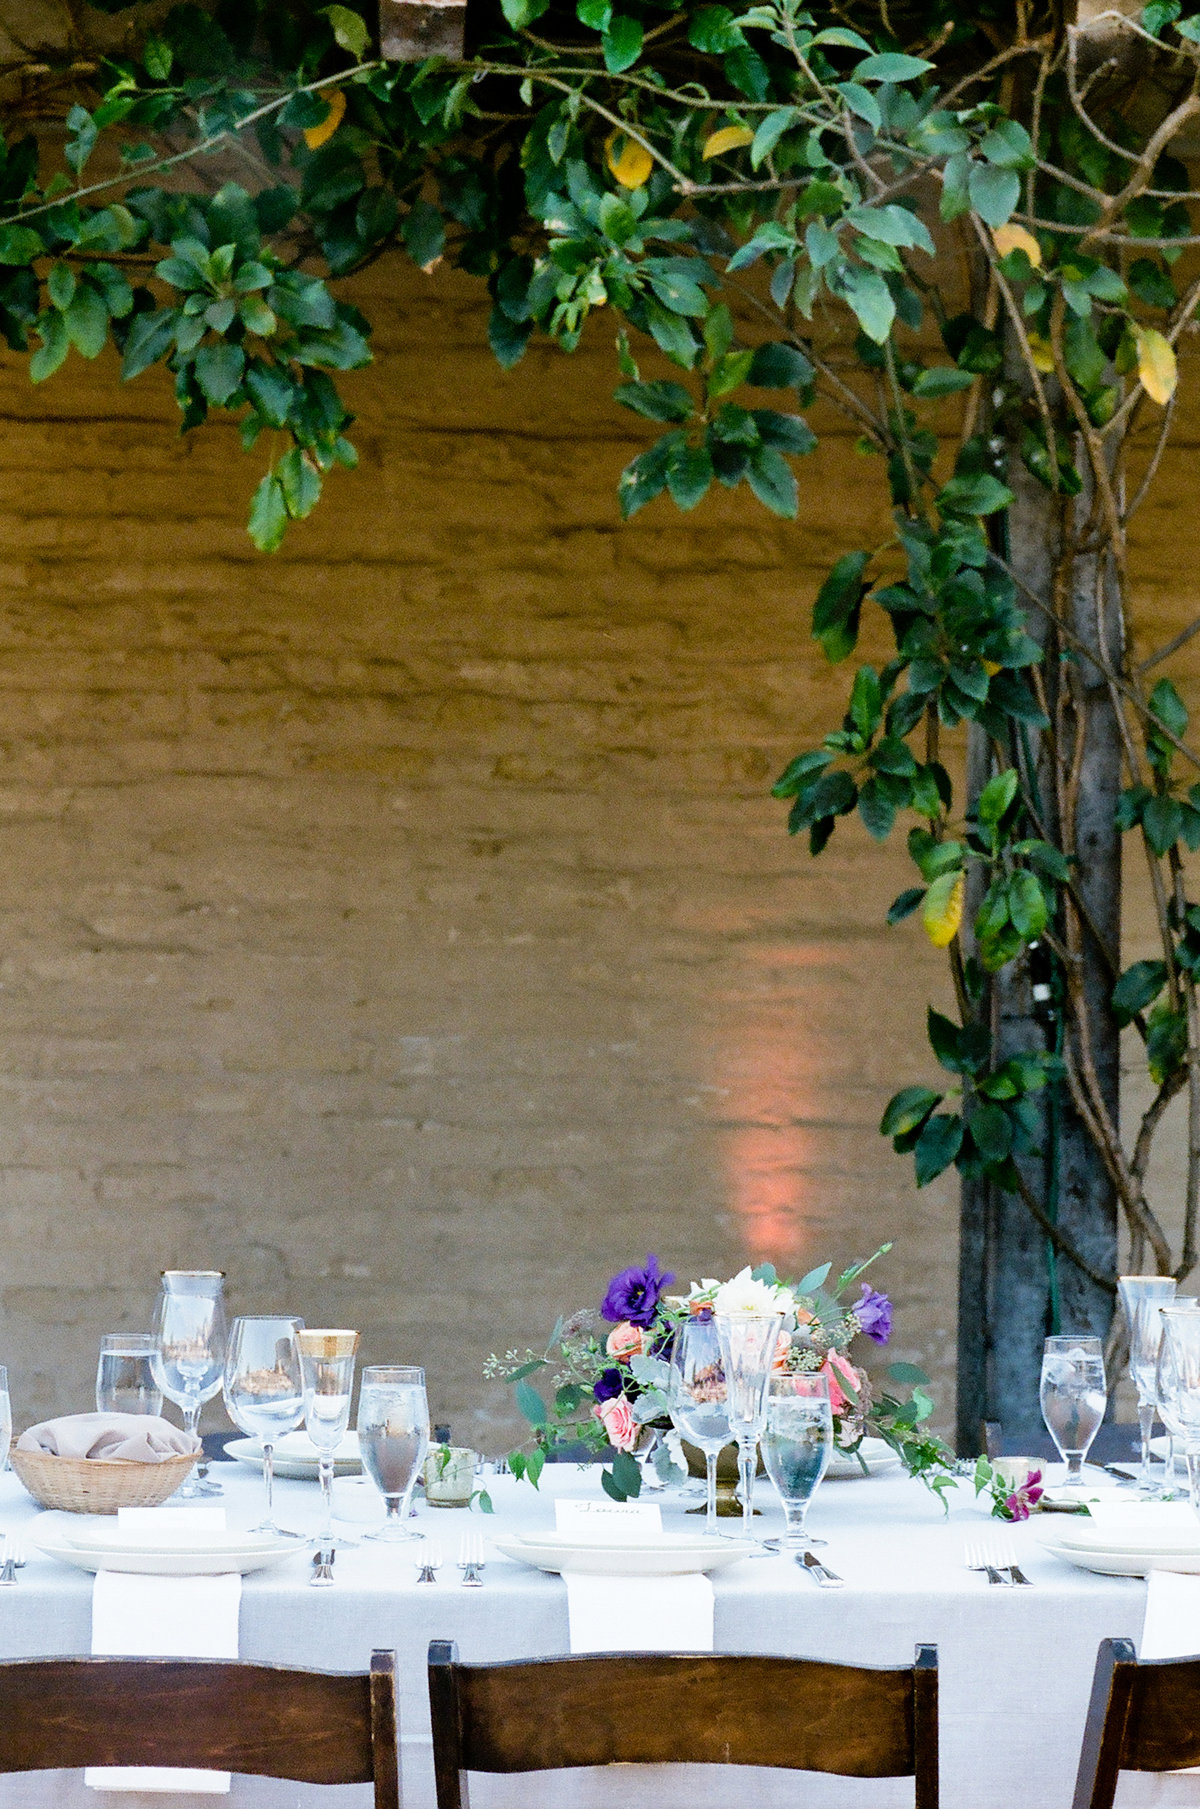 alex_toast_event_christianne_taylor_photos_photography_film_alex_solomon_alexandra_michael_toast_santa_barbara_el_presidio_mission_rustic_elegant_wedding_marry_-675